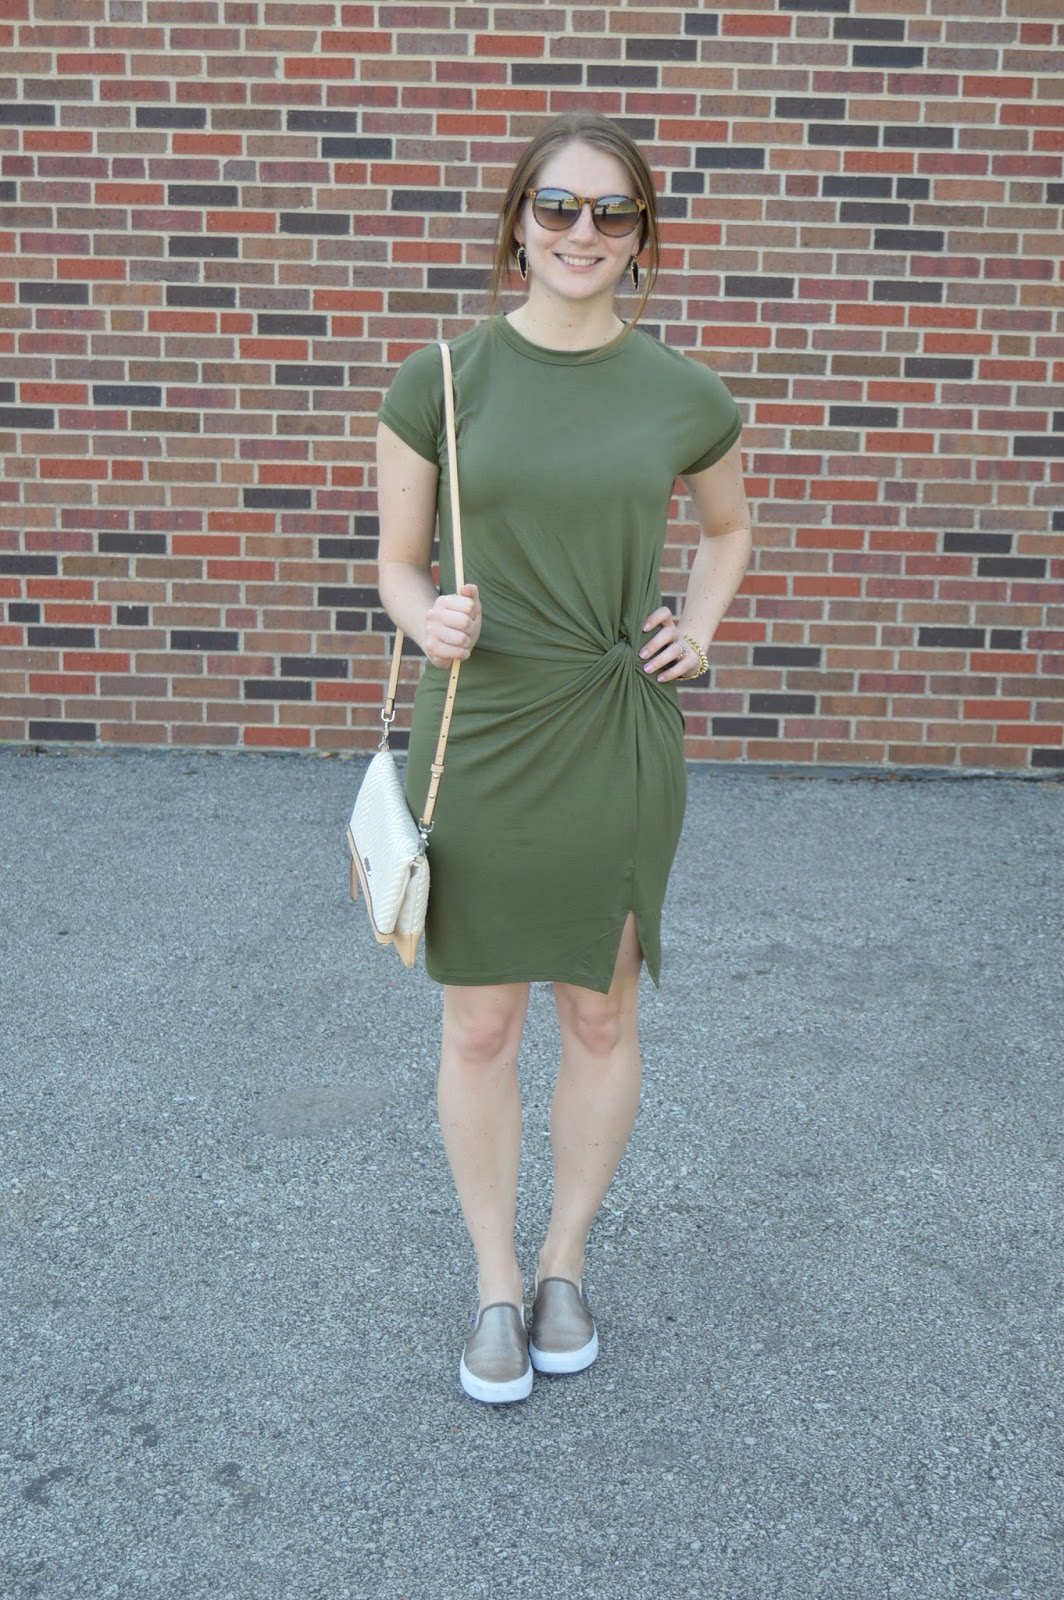 the most figure flattering t-shirt dress | olive green t-shirt dress | a memory of us | casual weekend looks | what to wear with gold sneakers | figure flattering dresses | casual outfit ideas | summer outfit ideas | what to wear this summer